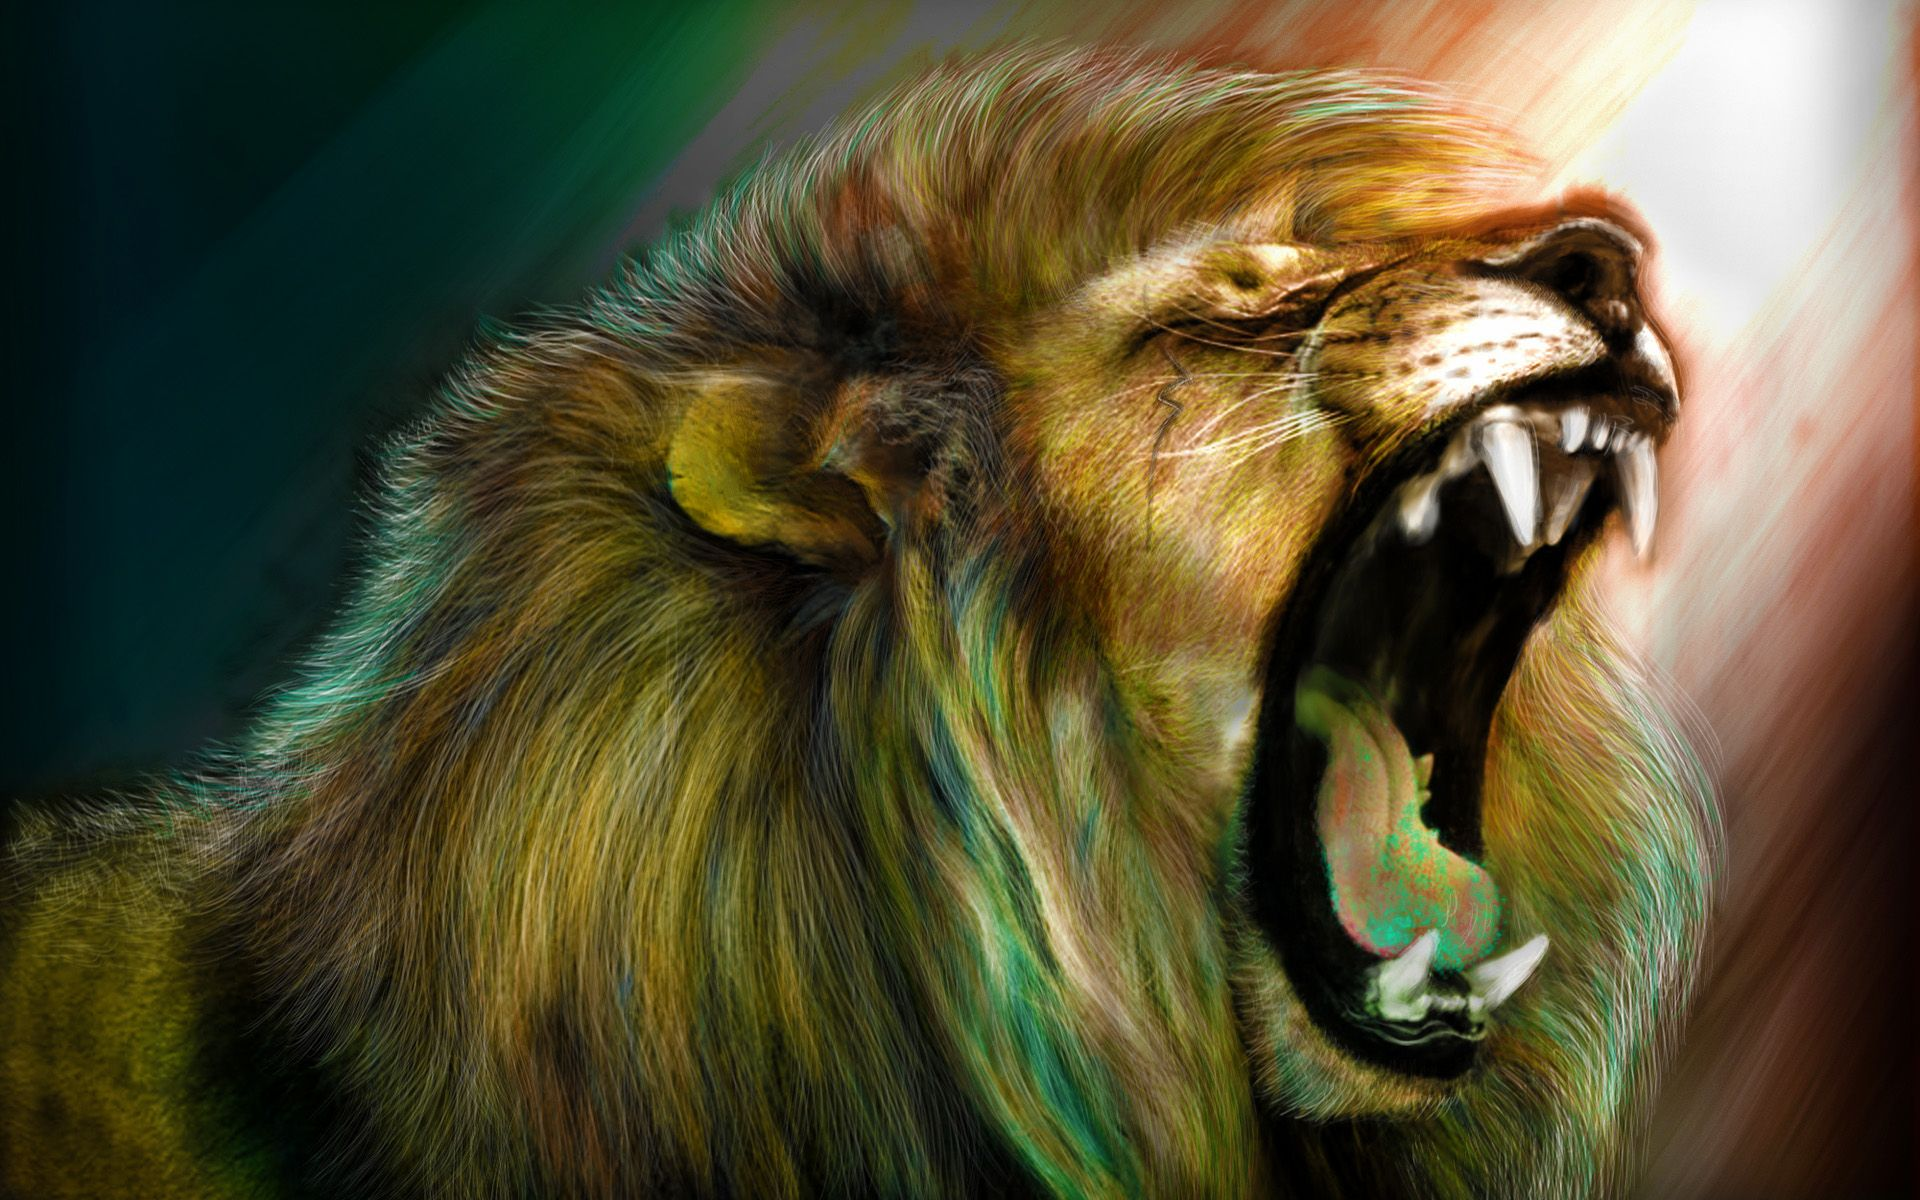 Pin By T Tyrell On Alpha Leonis Lion Images Lion Wallpaper